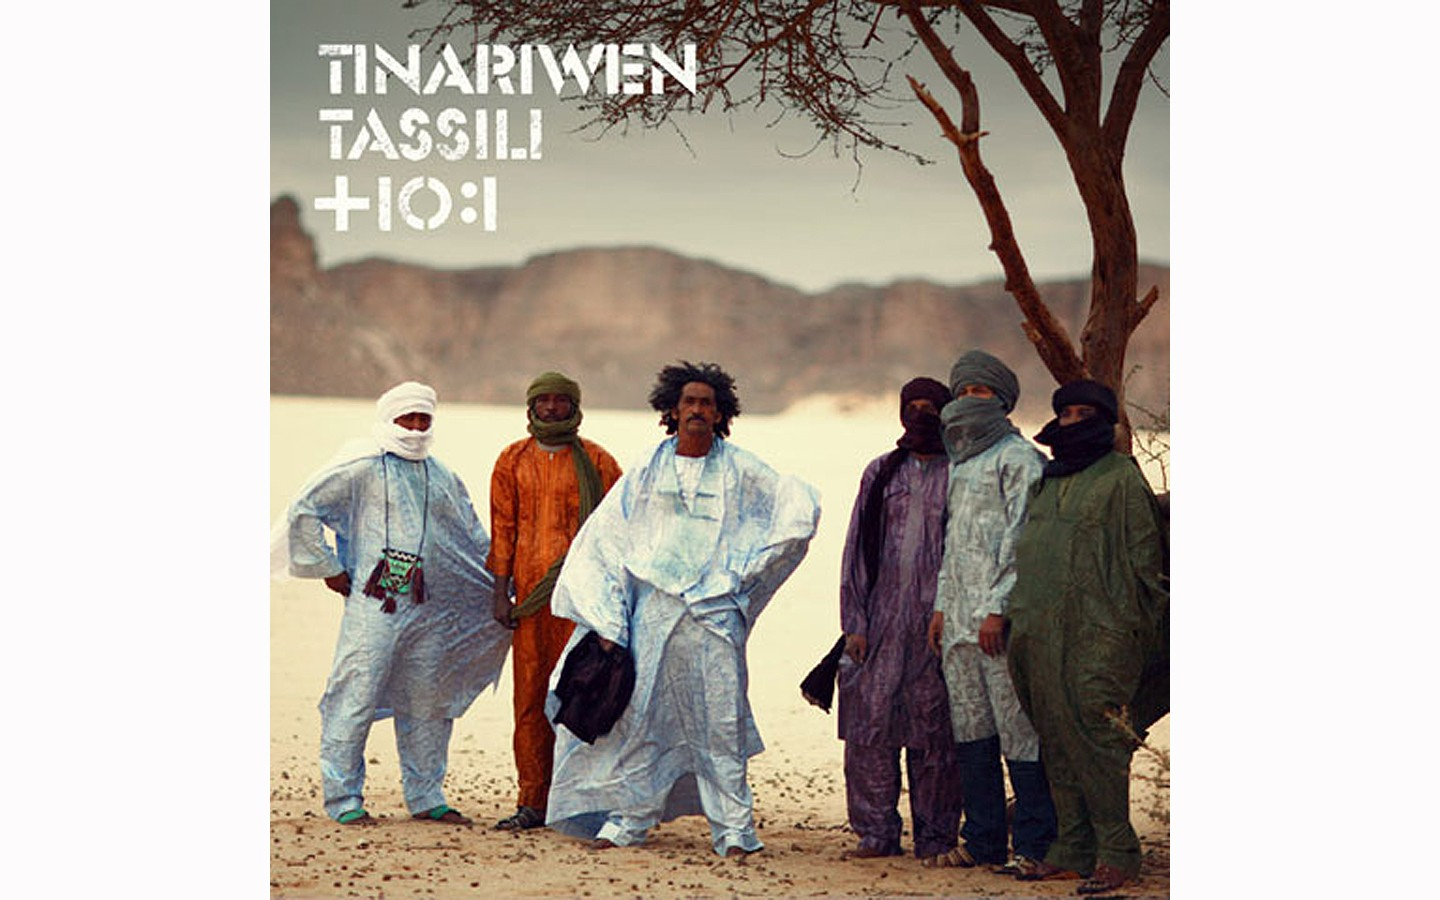 Tassili - BY TINARIWEN - ANTI-